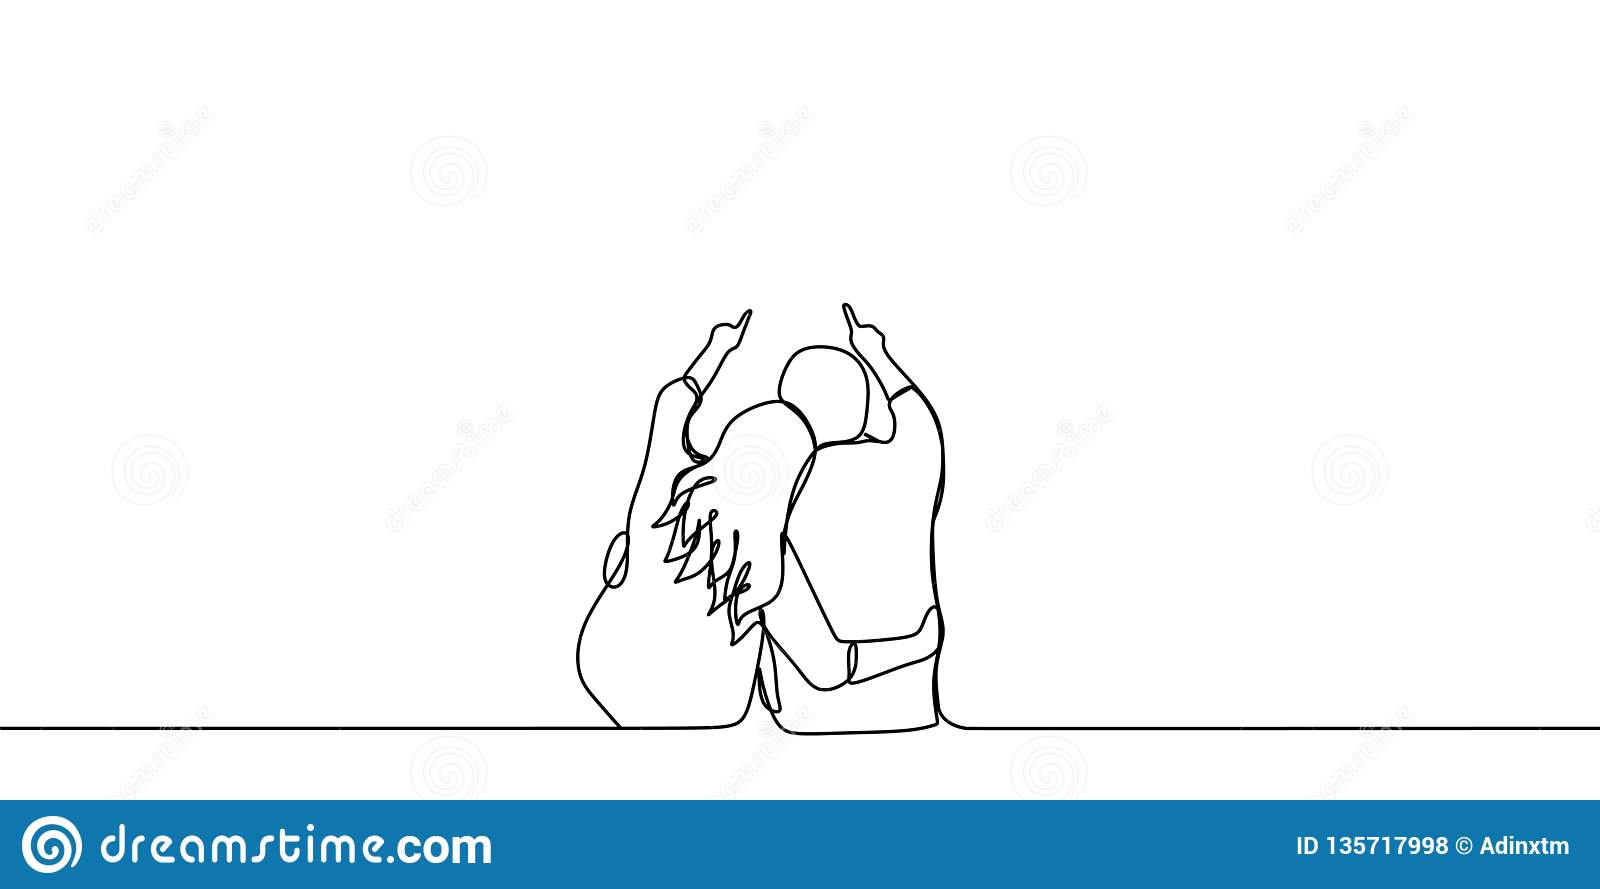 Cute And Romantic Couple One Line Drawing Vector Illustration Stock Vector Illustration Of Happiness Drawing 135717998